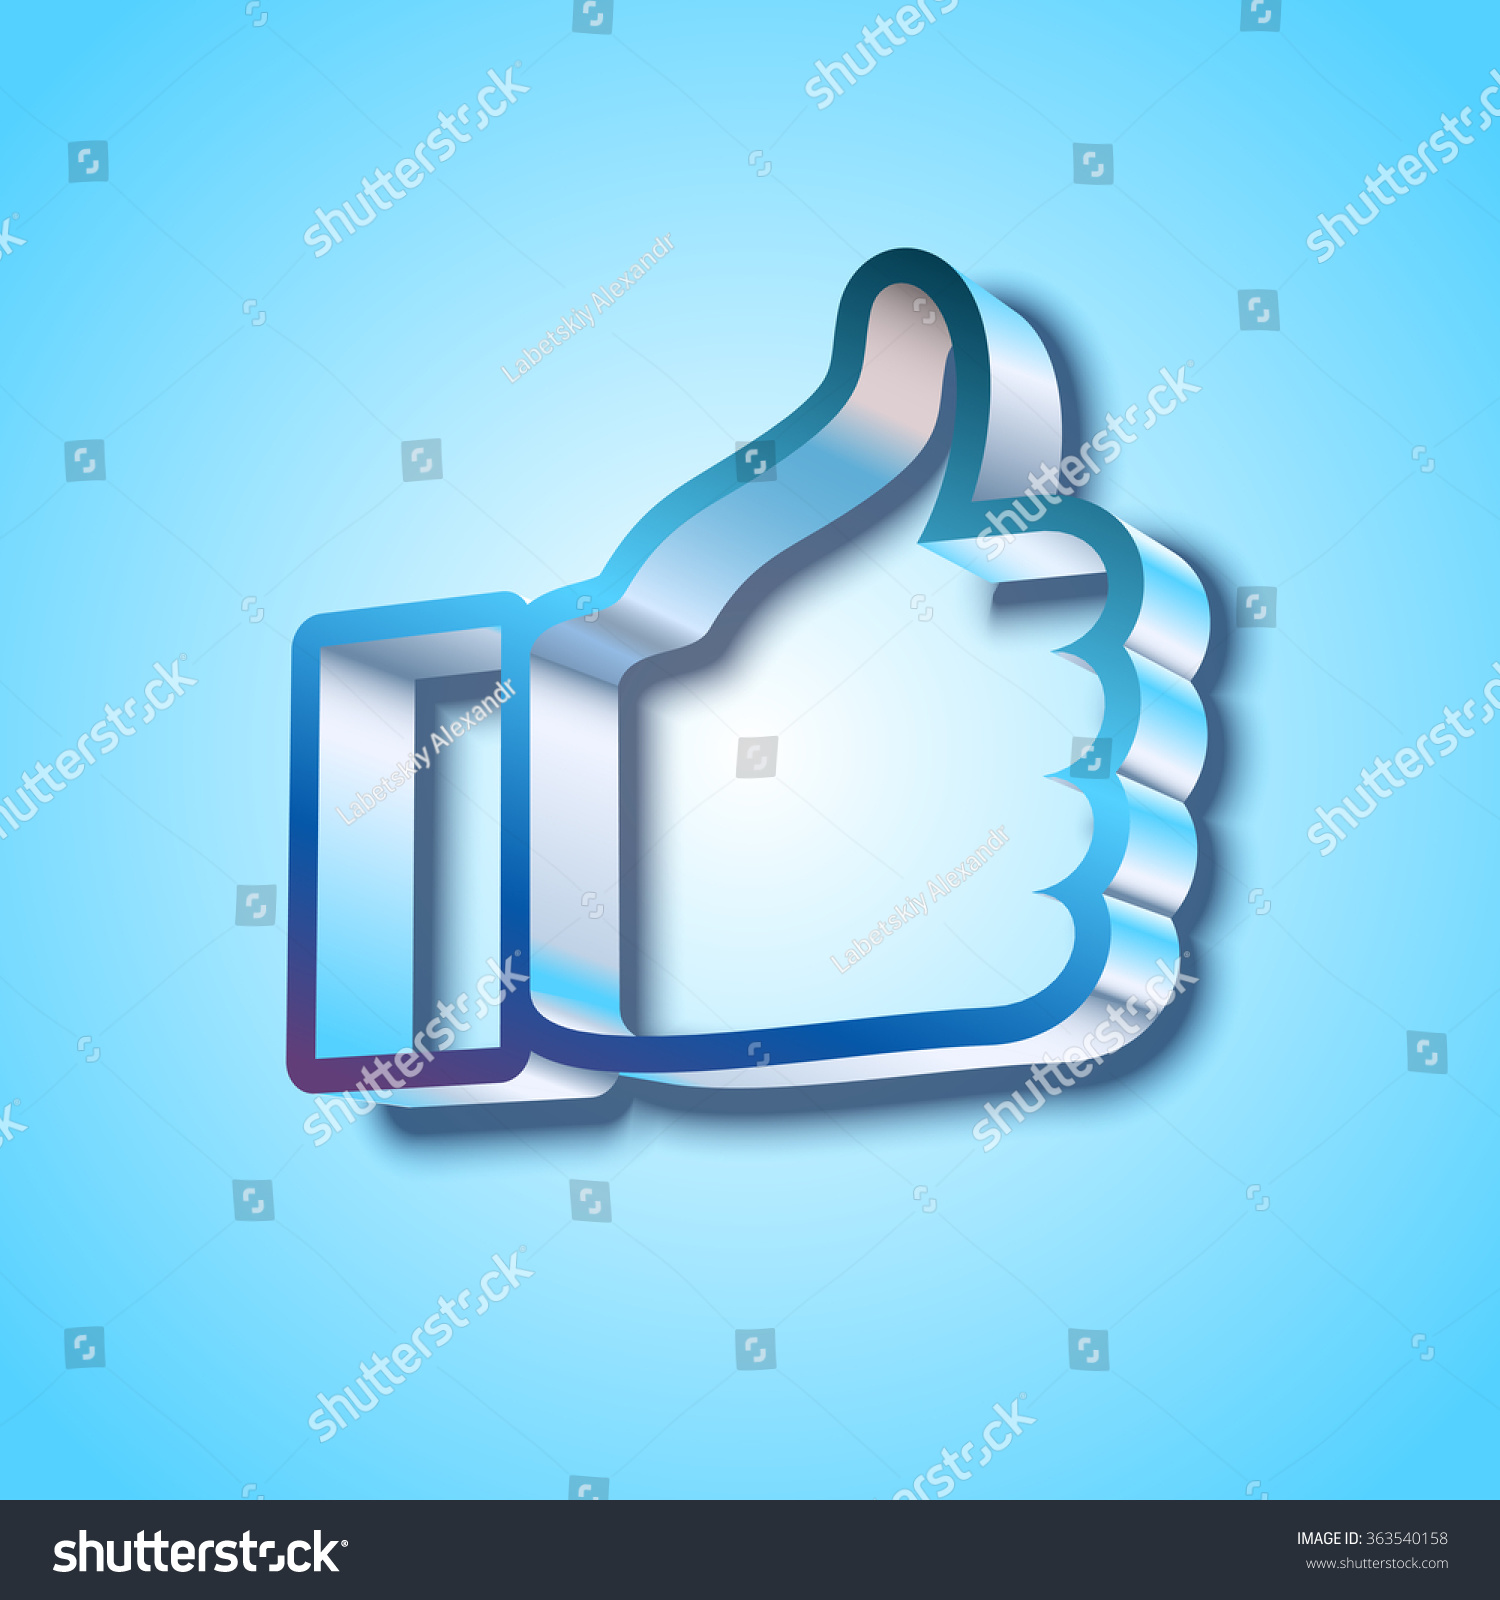 Like symbol on blue background stock vector 363540158 shutterstock like symbol on blue background buycottarizona Choice Image